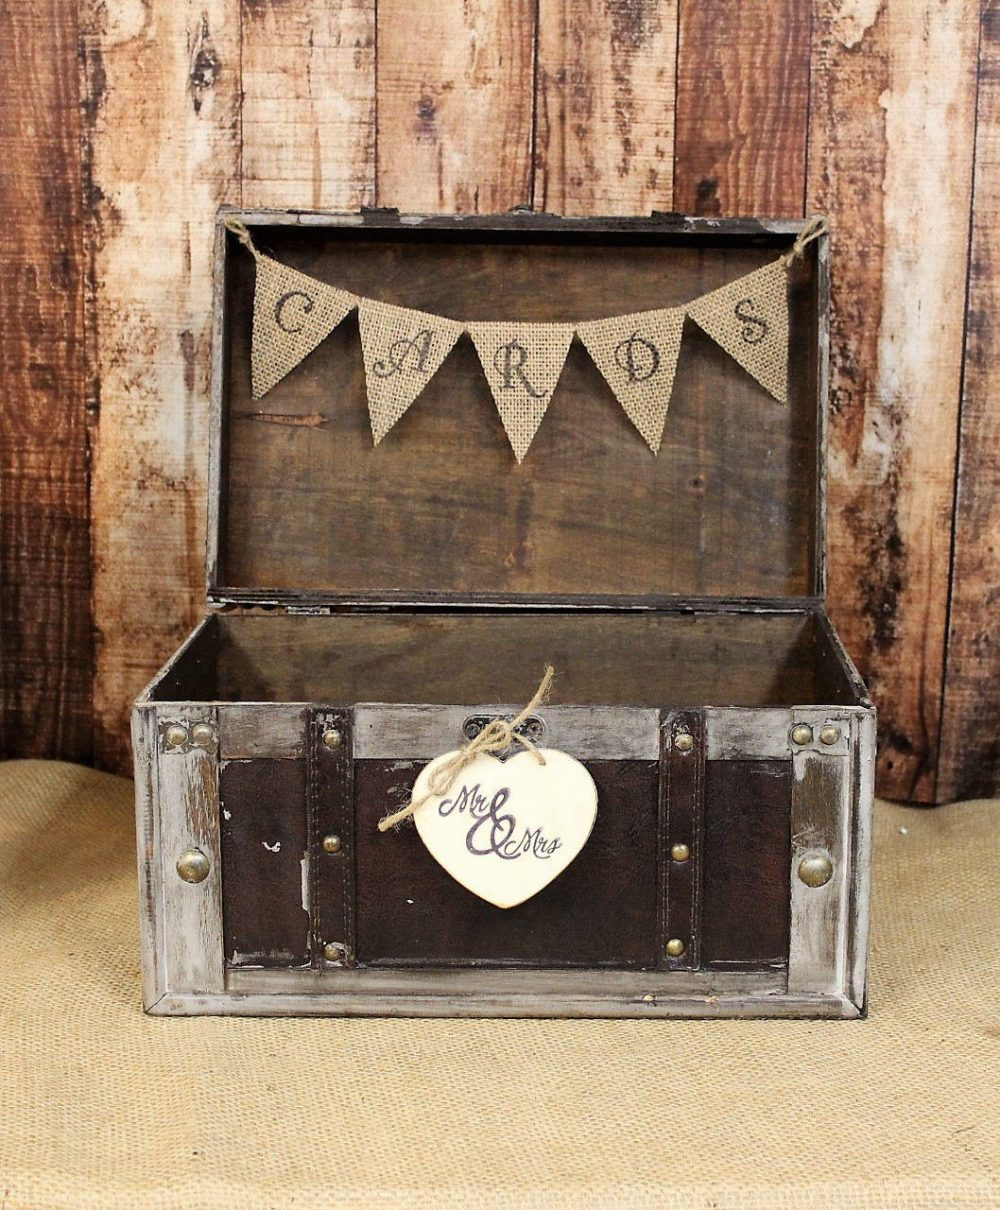 Wedding Card Box With Burlap Banner-Rustic Box-Shabby Chic Decor, Distressed Box, Reception Holder